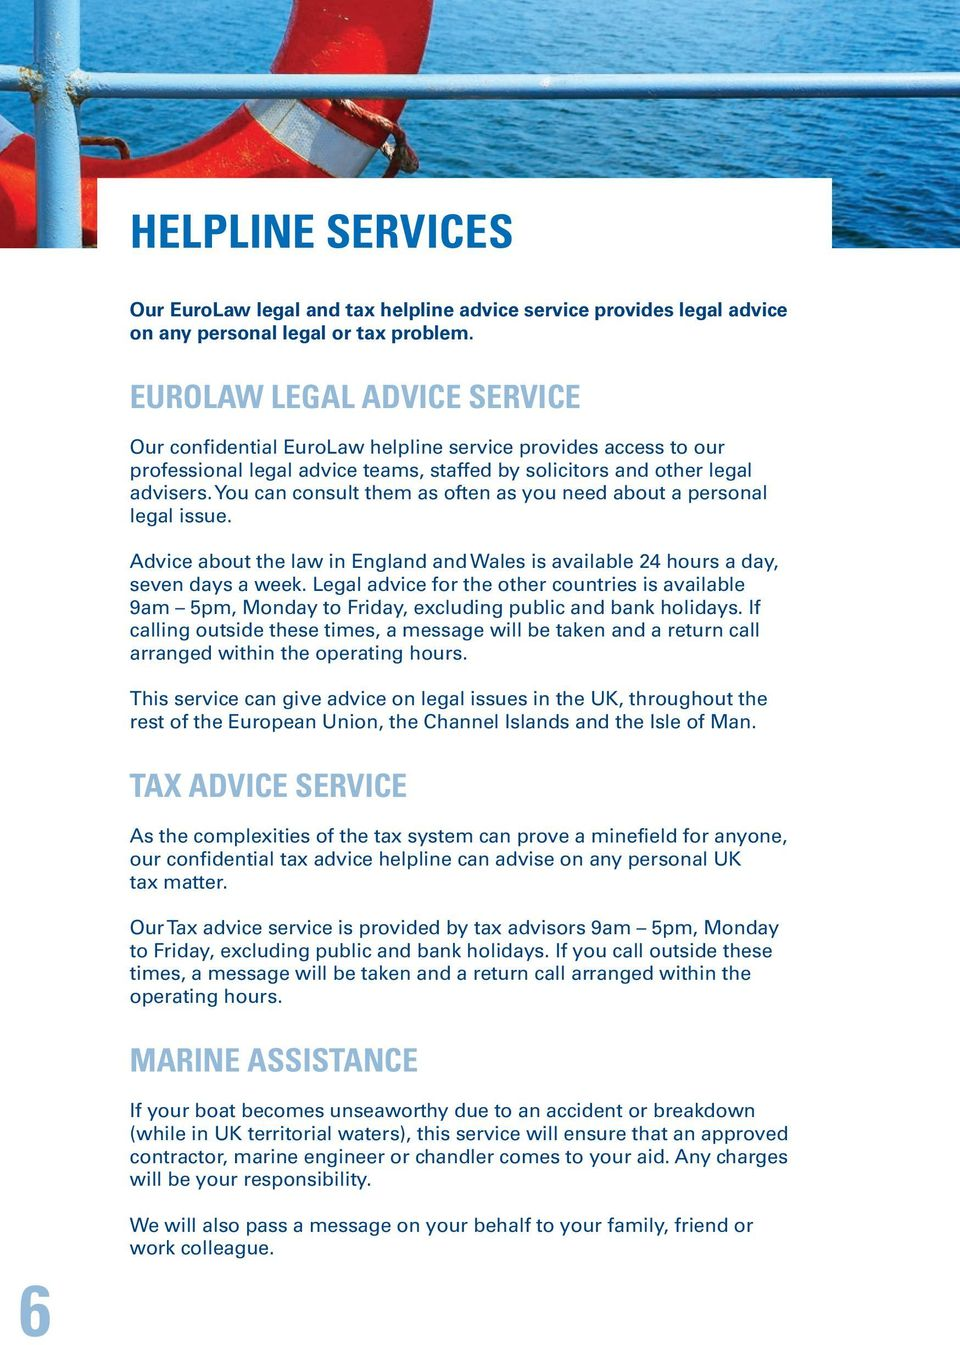 You can consult them as often as you need about a personal legal issue. Advice about the law in England and Wales is available 24 hours a day, seven days a week.